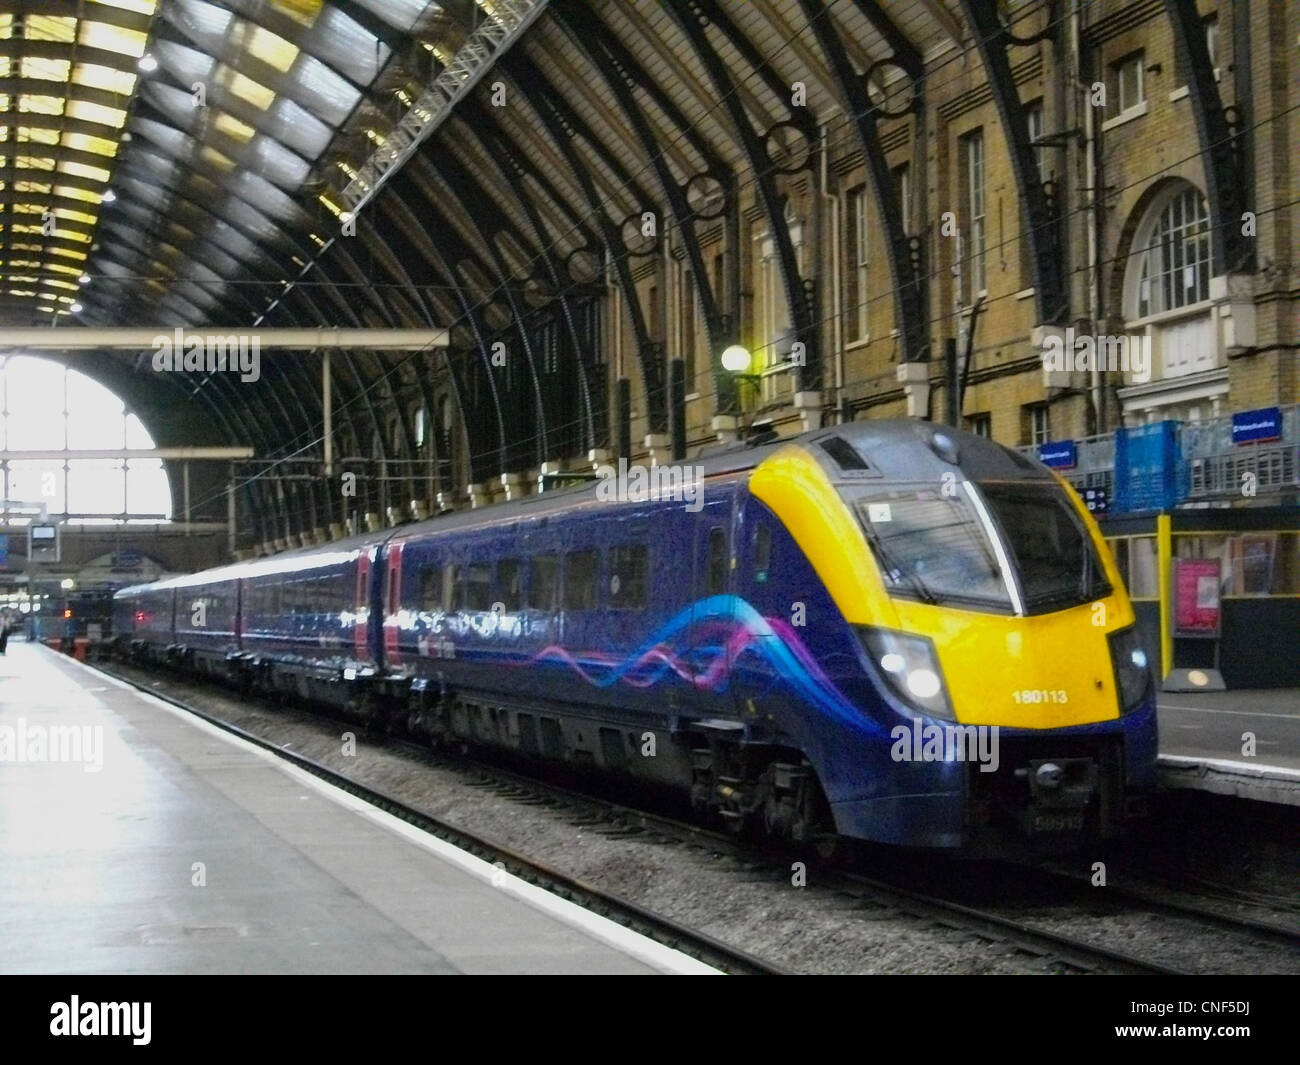 First Hull Trains refurbished Alstom Class 180 Adelante No. 180113 at London Kings Cross. - Stock Image